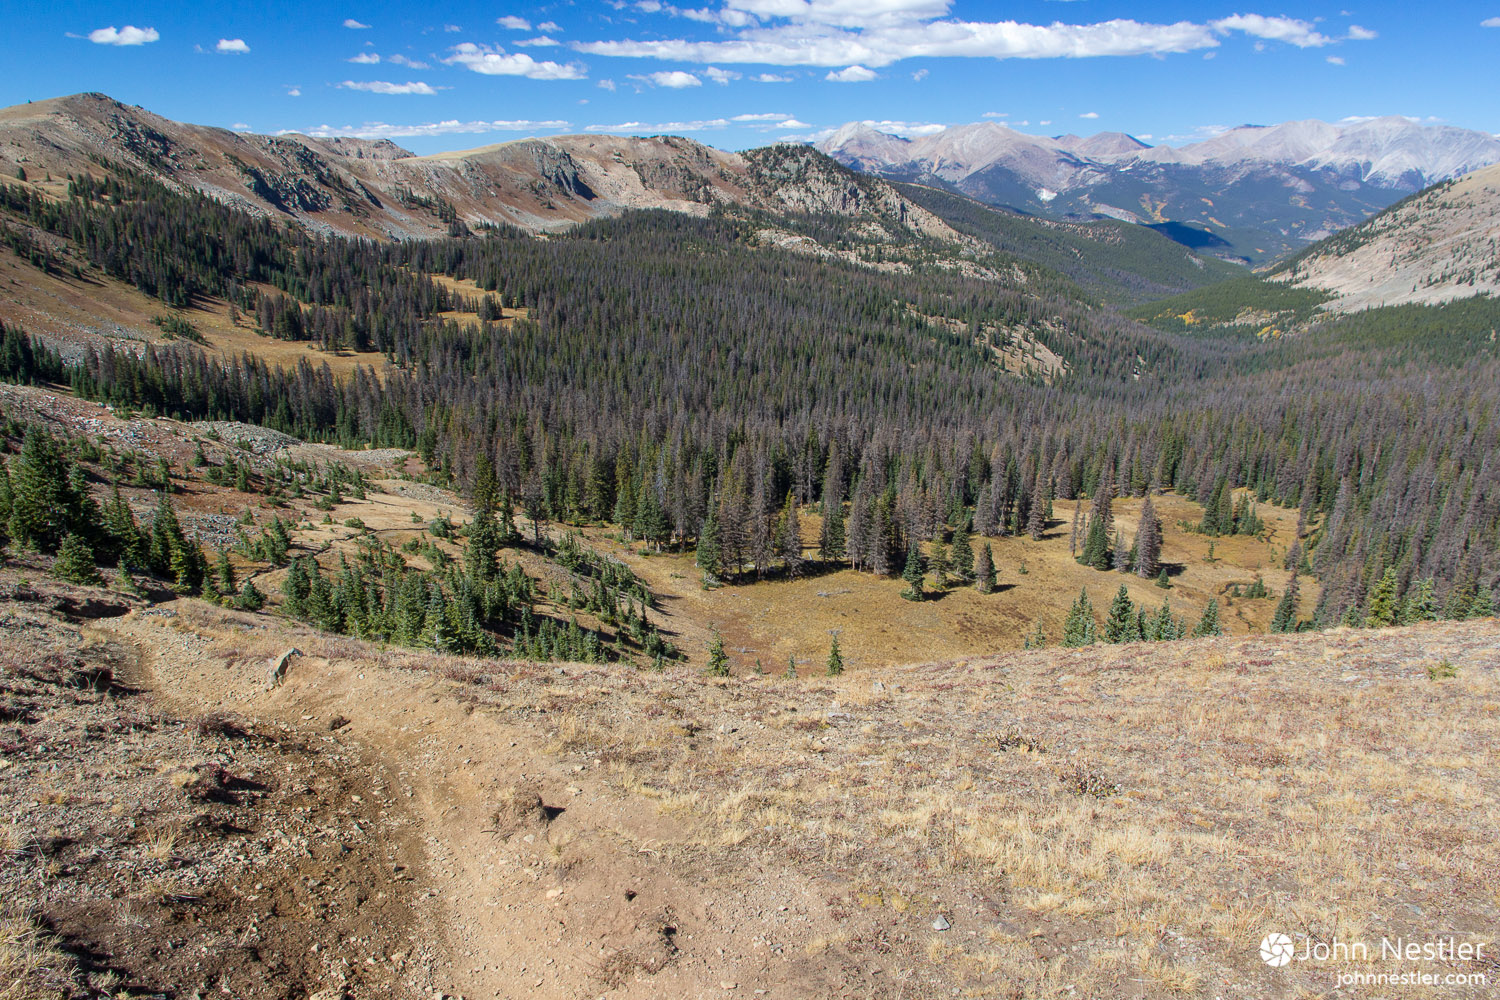 It takes a good bit of planning to piece together a trip on the Colorado Trail, but once you're out there it's more than worth it!